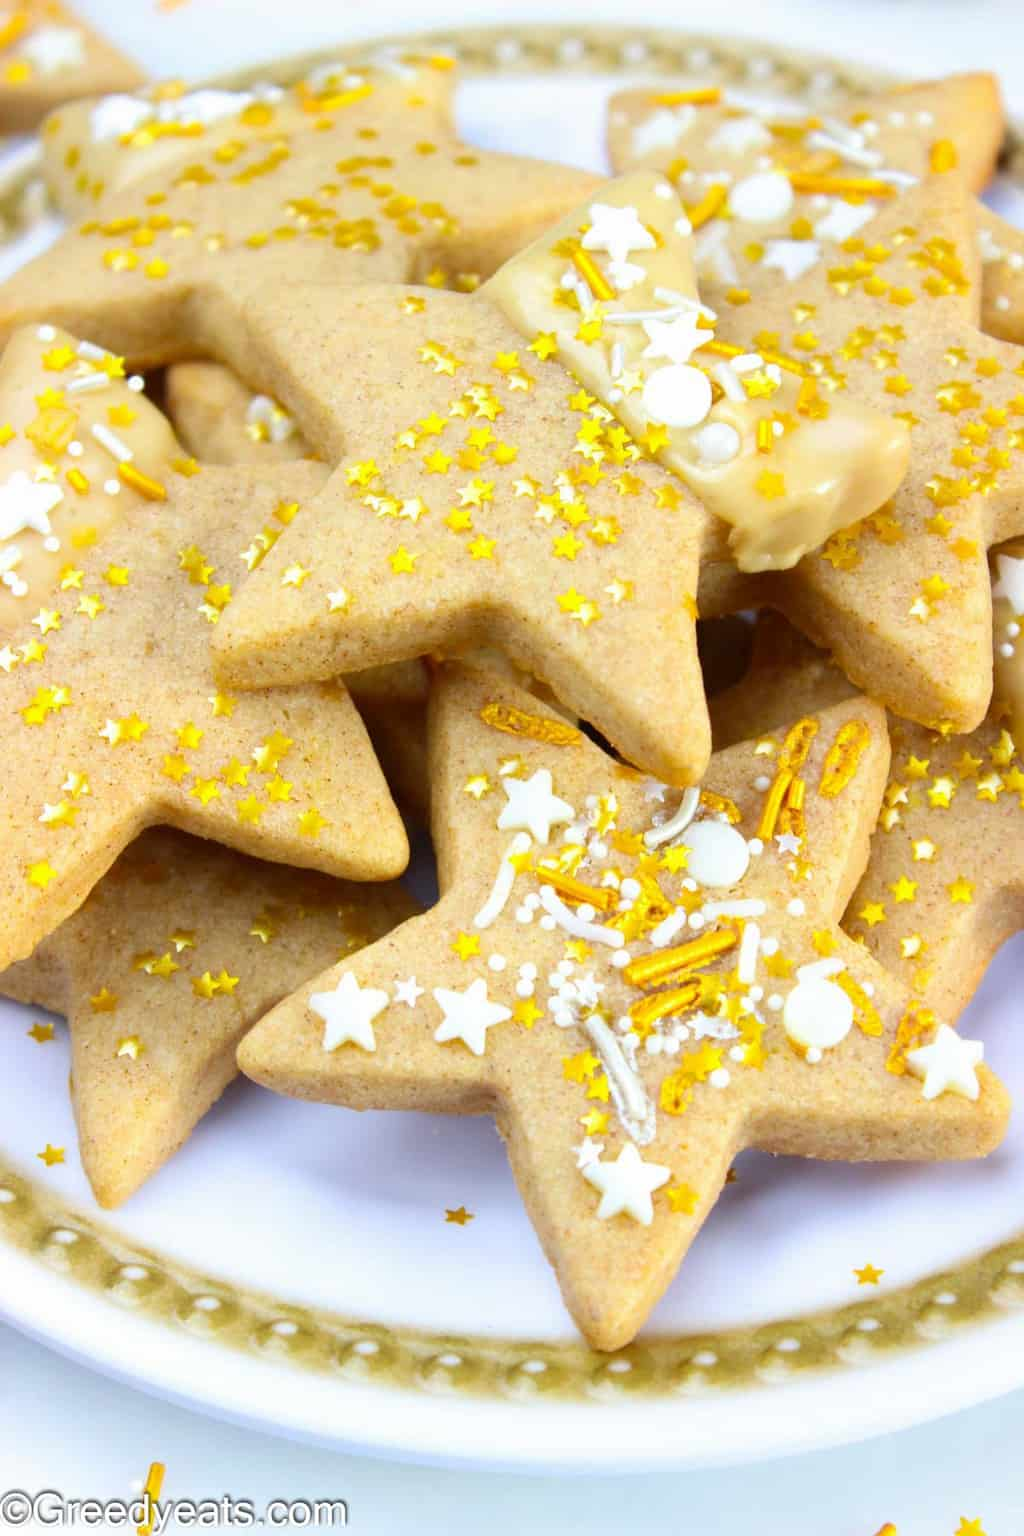 Soft, chewy and thick star sugar cookies flavored with cinnamon and maple icing.